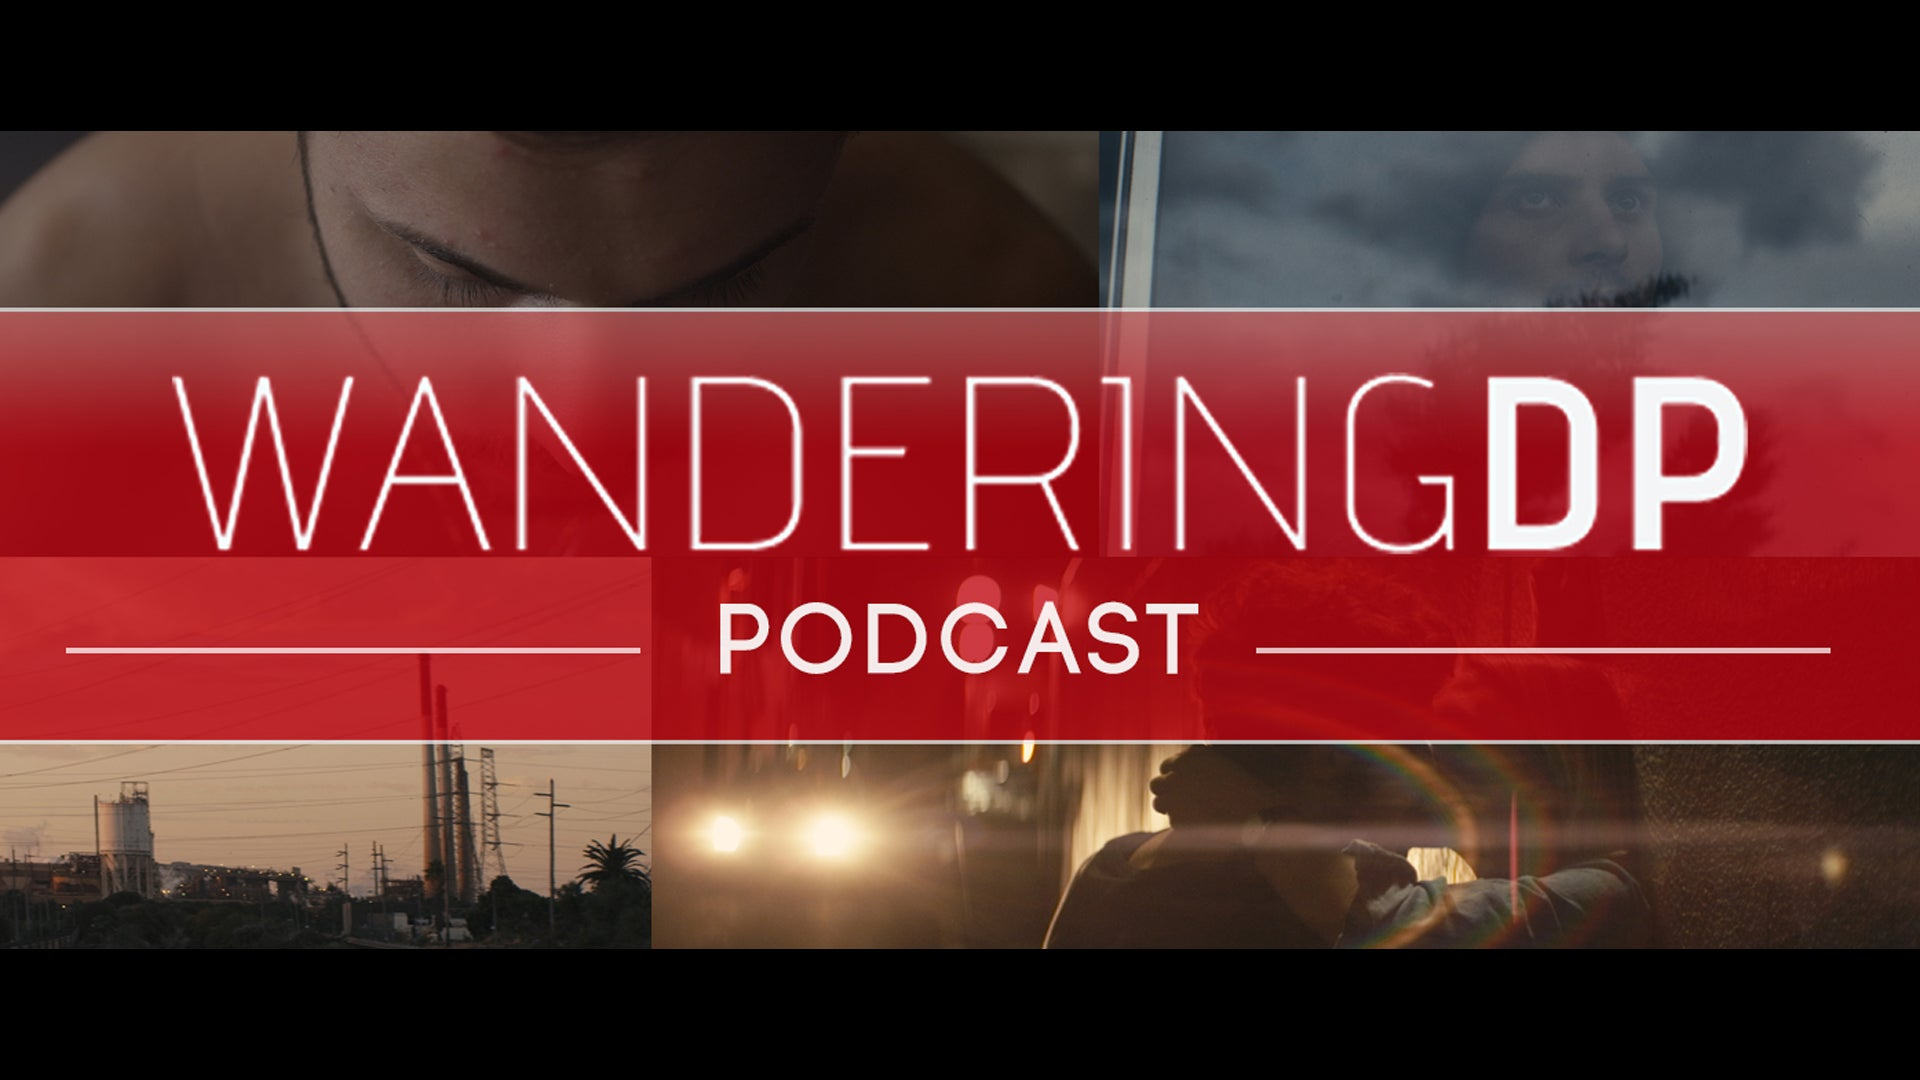 The Wandering DP Podcast: Episodes #1 - #10